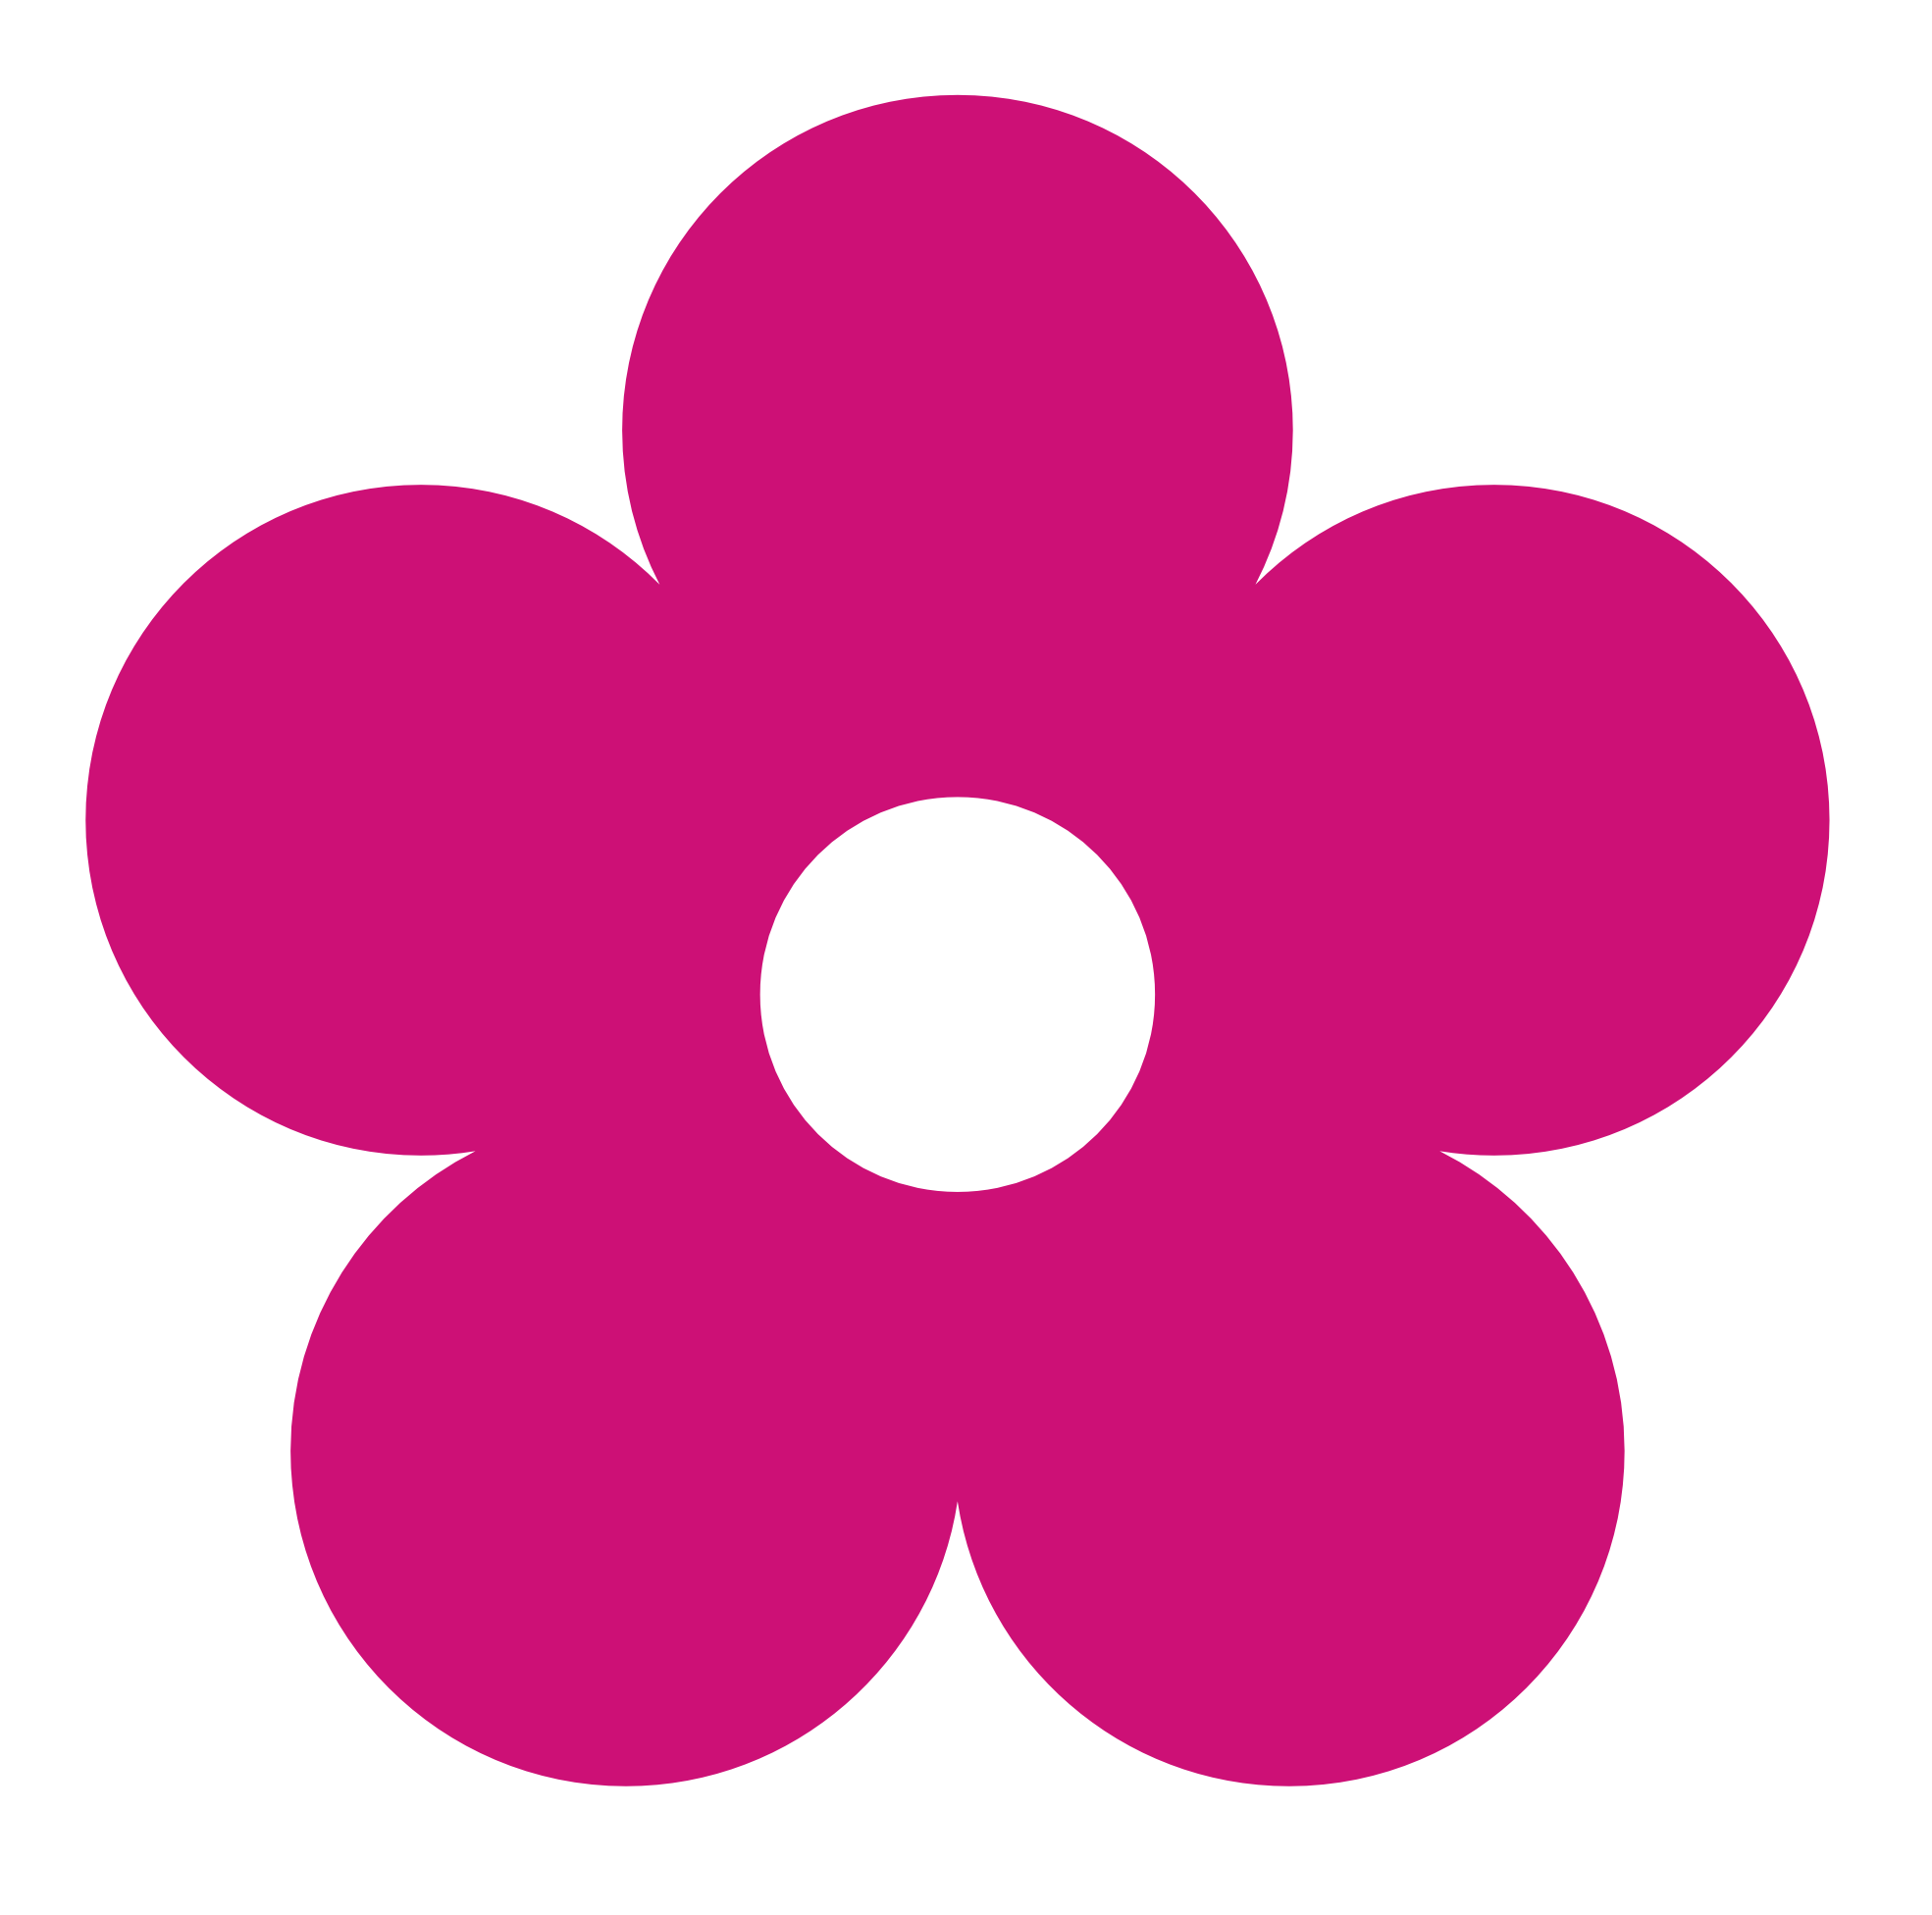 Image flower clipartpink clip. Number 1 clipart pink